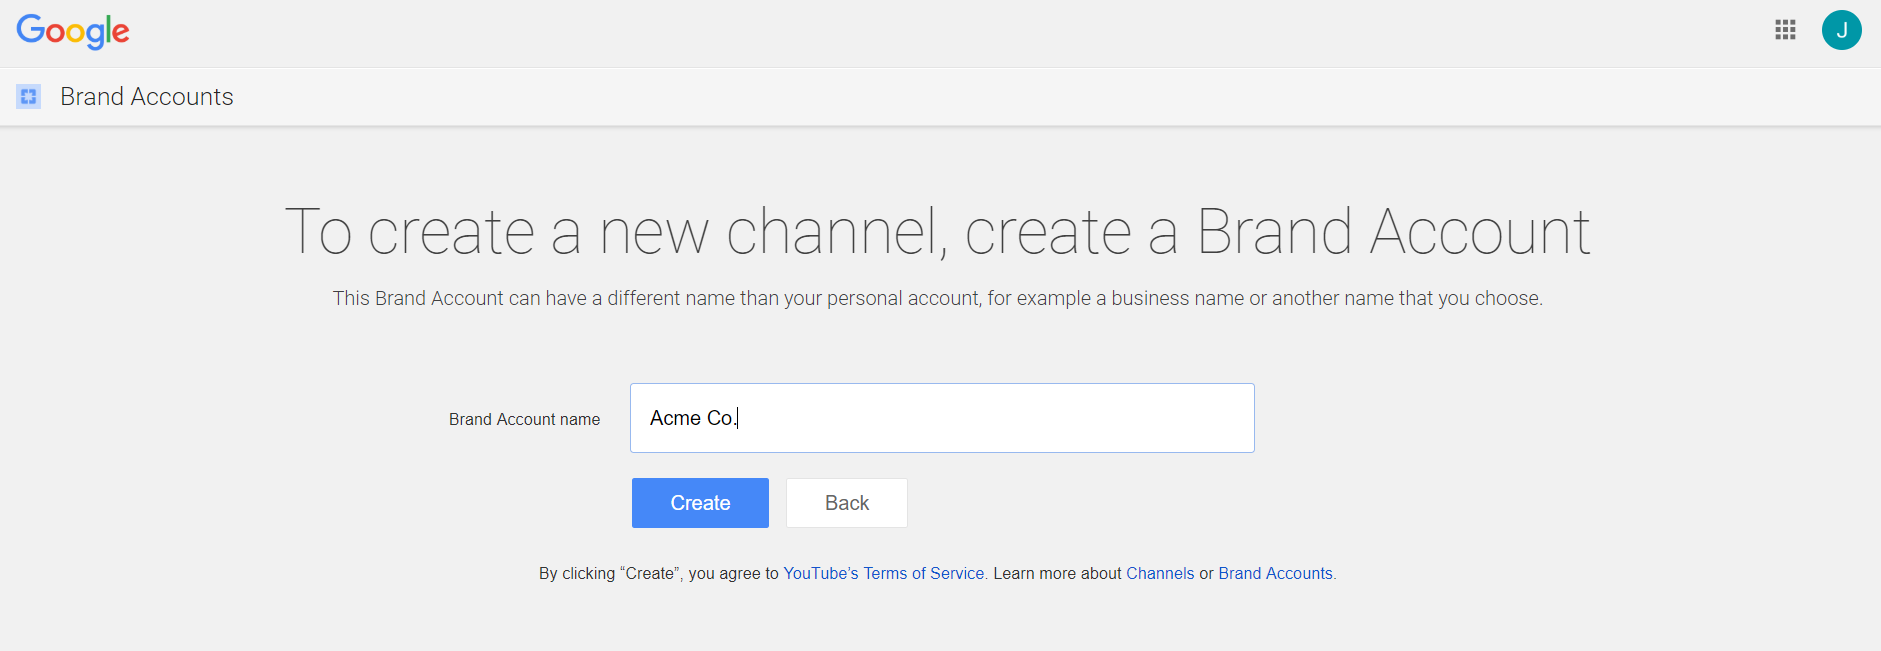 Here's how to create a YouTube brand name account versus a personal one